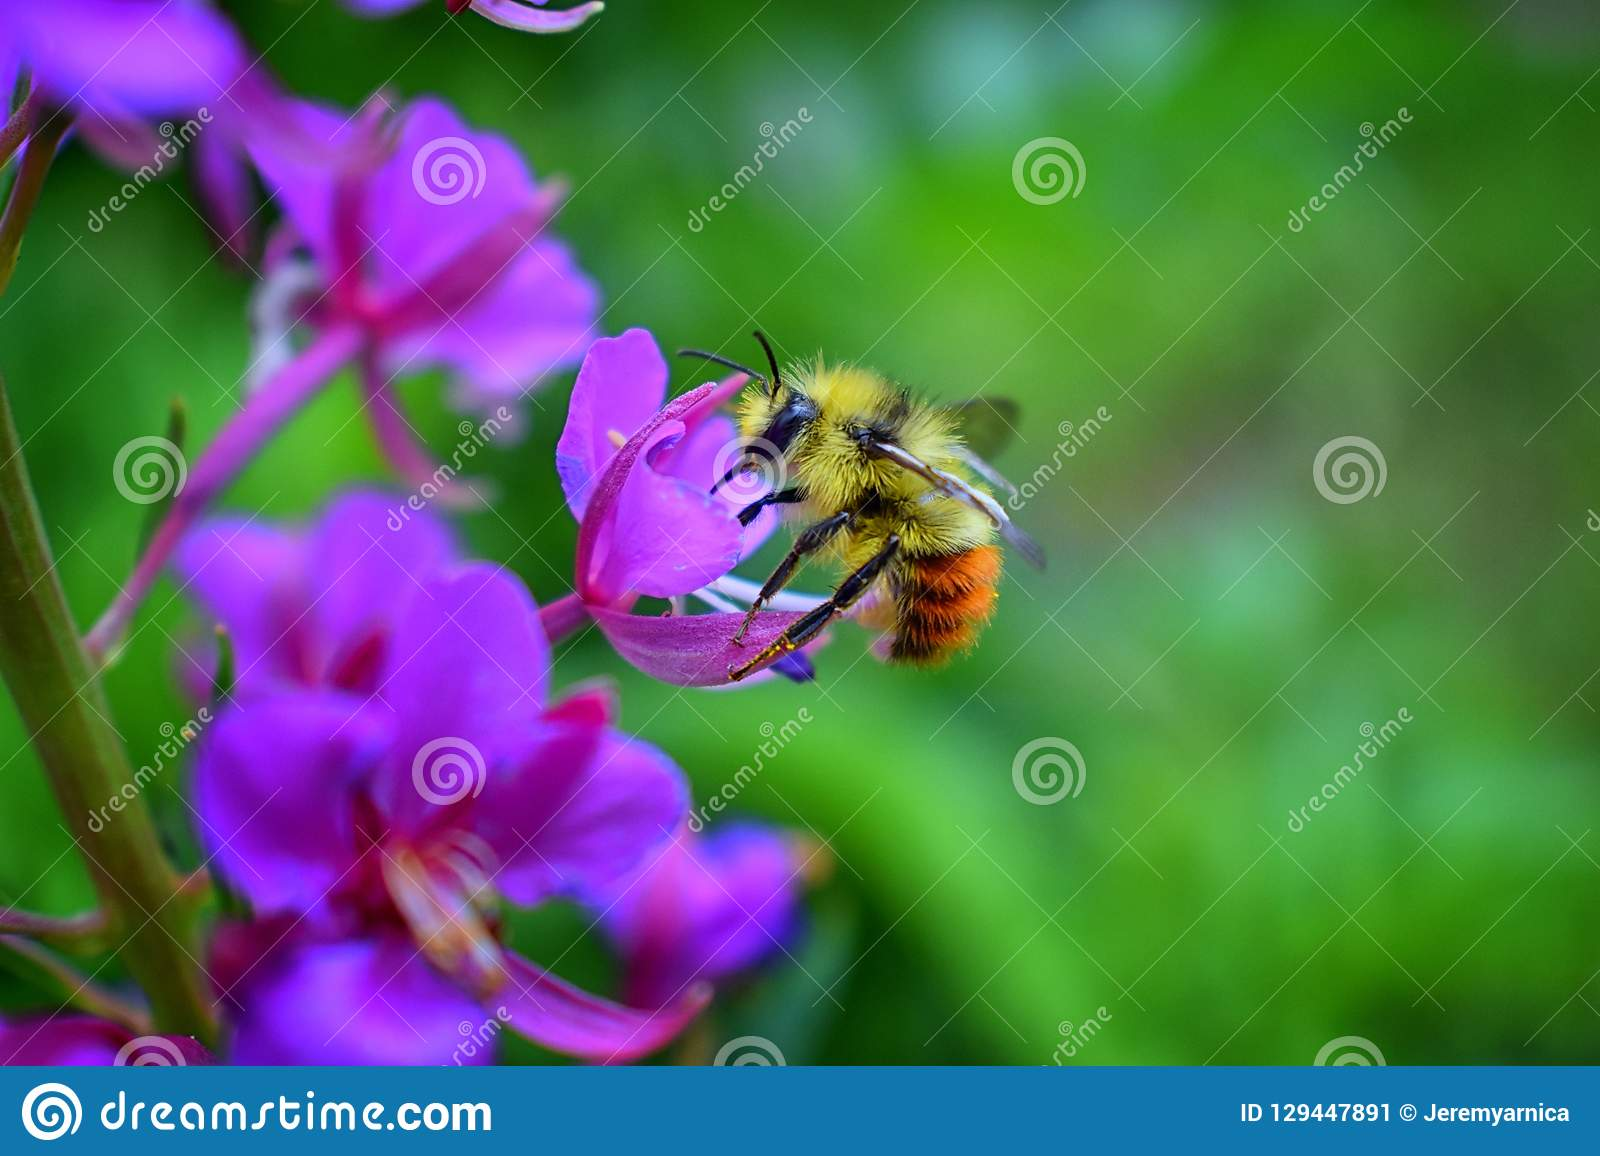 Bumble bee Bombus huntii, Hymenoptera, Apidae, Bombinae collecting pollen and nectar from wild flowers along hiking trails to Do